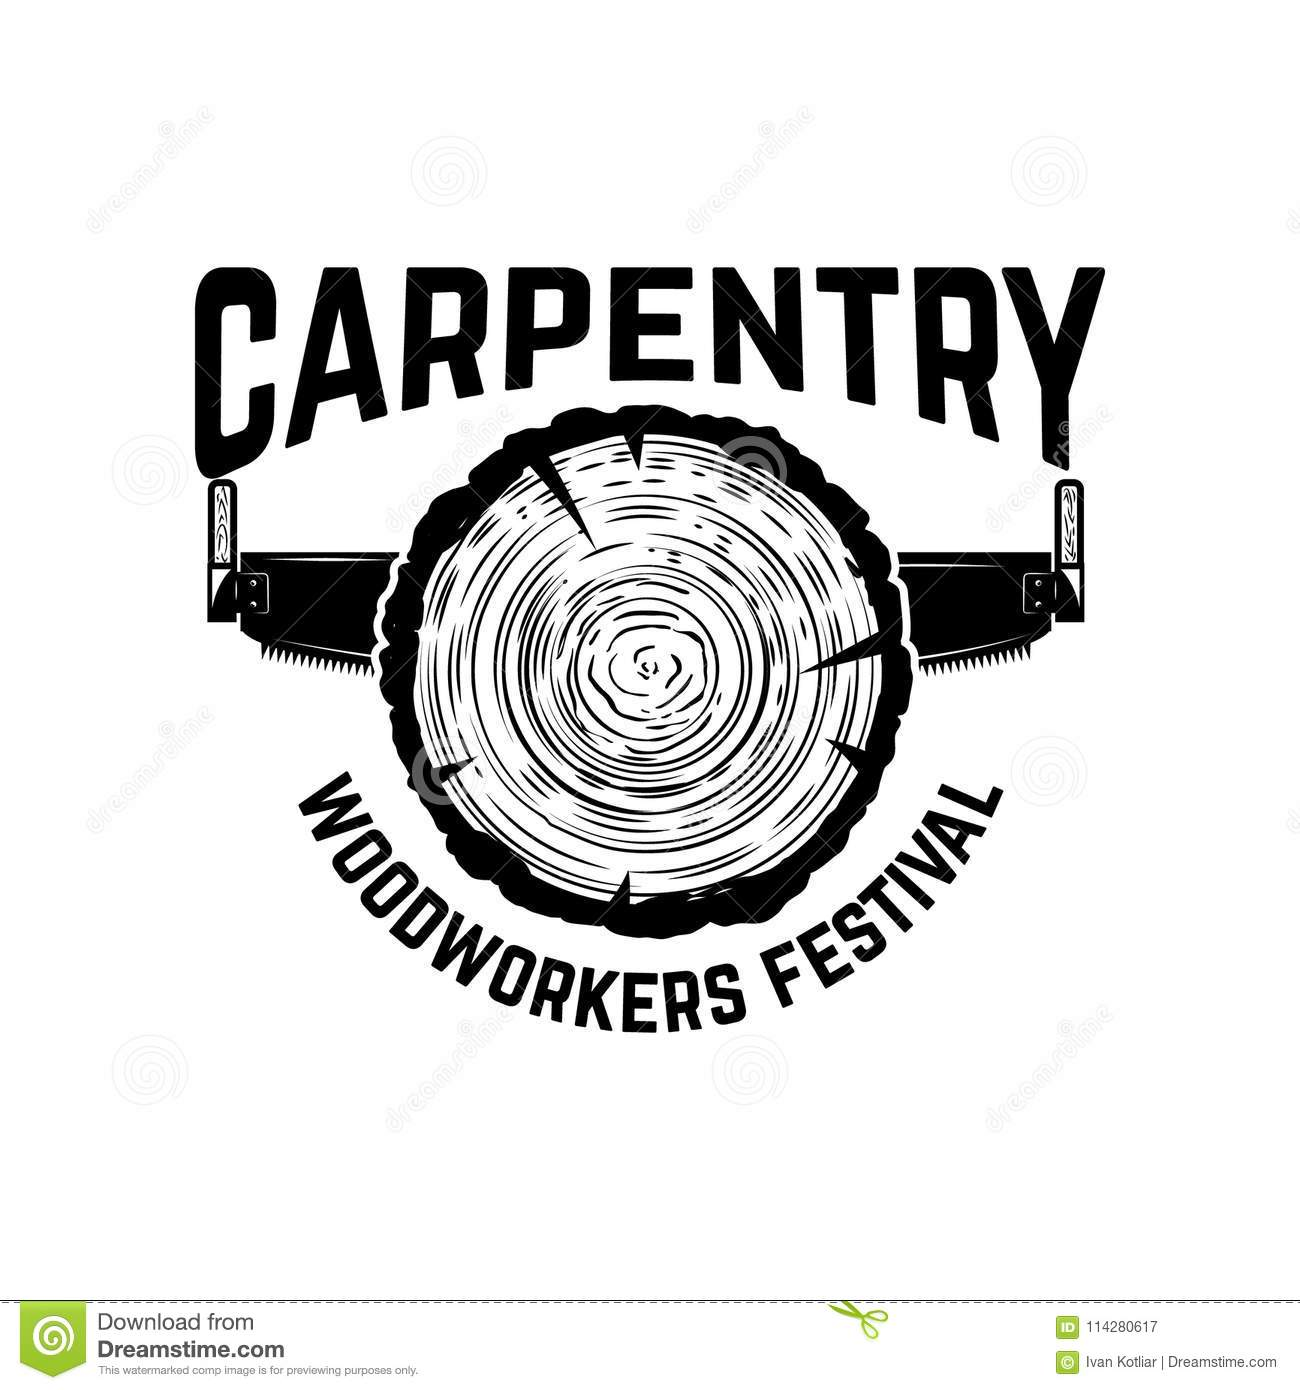 Carpentry Emblem Template With Cutting Wood And Hand Saw Design